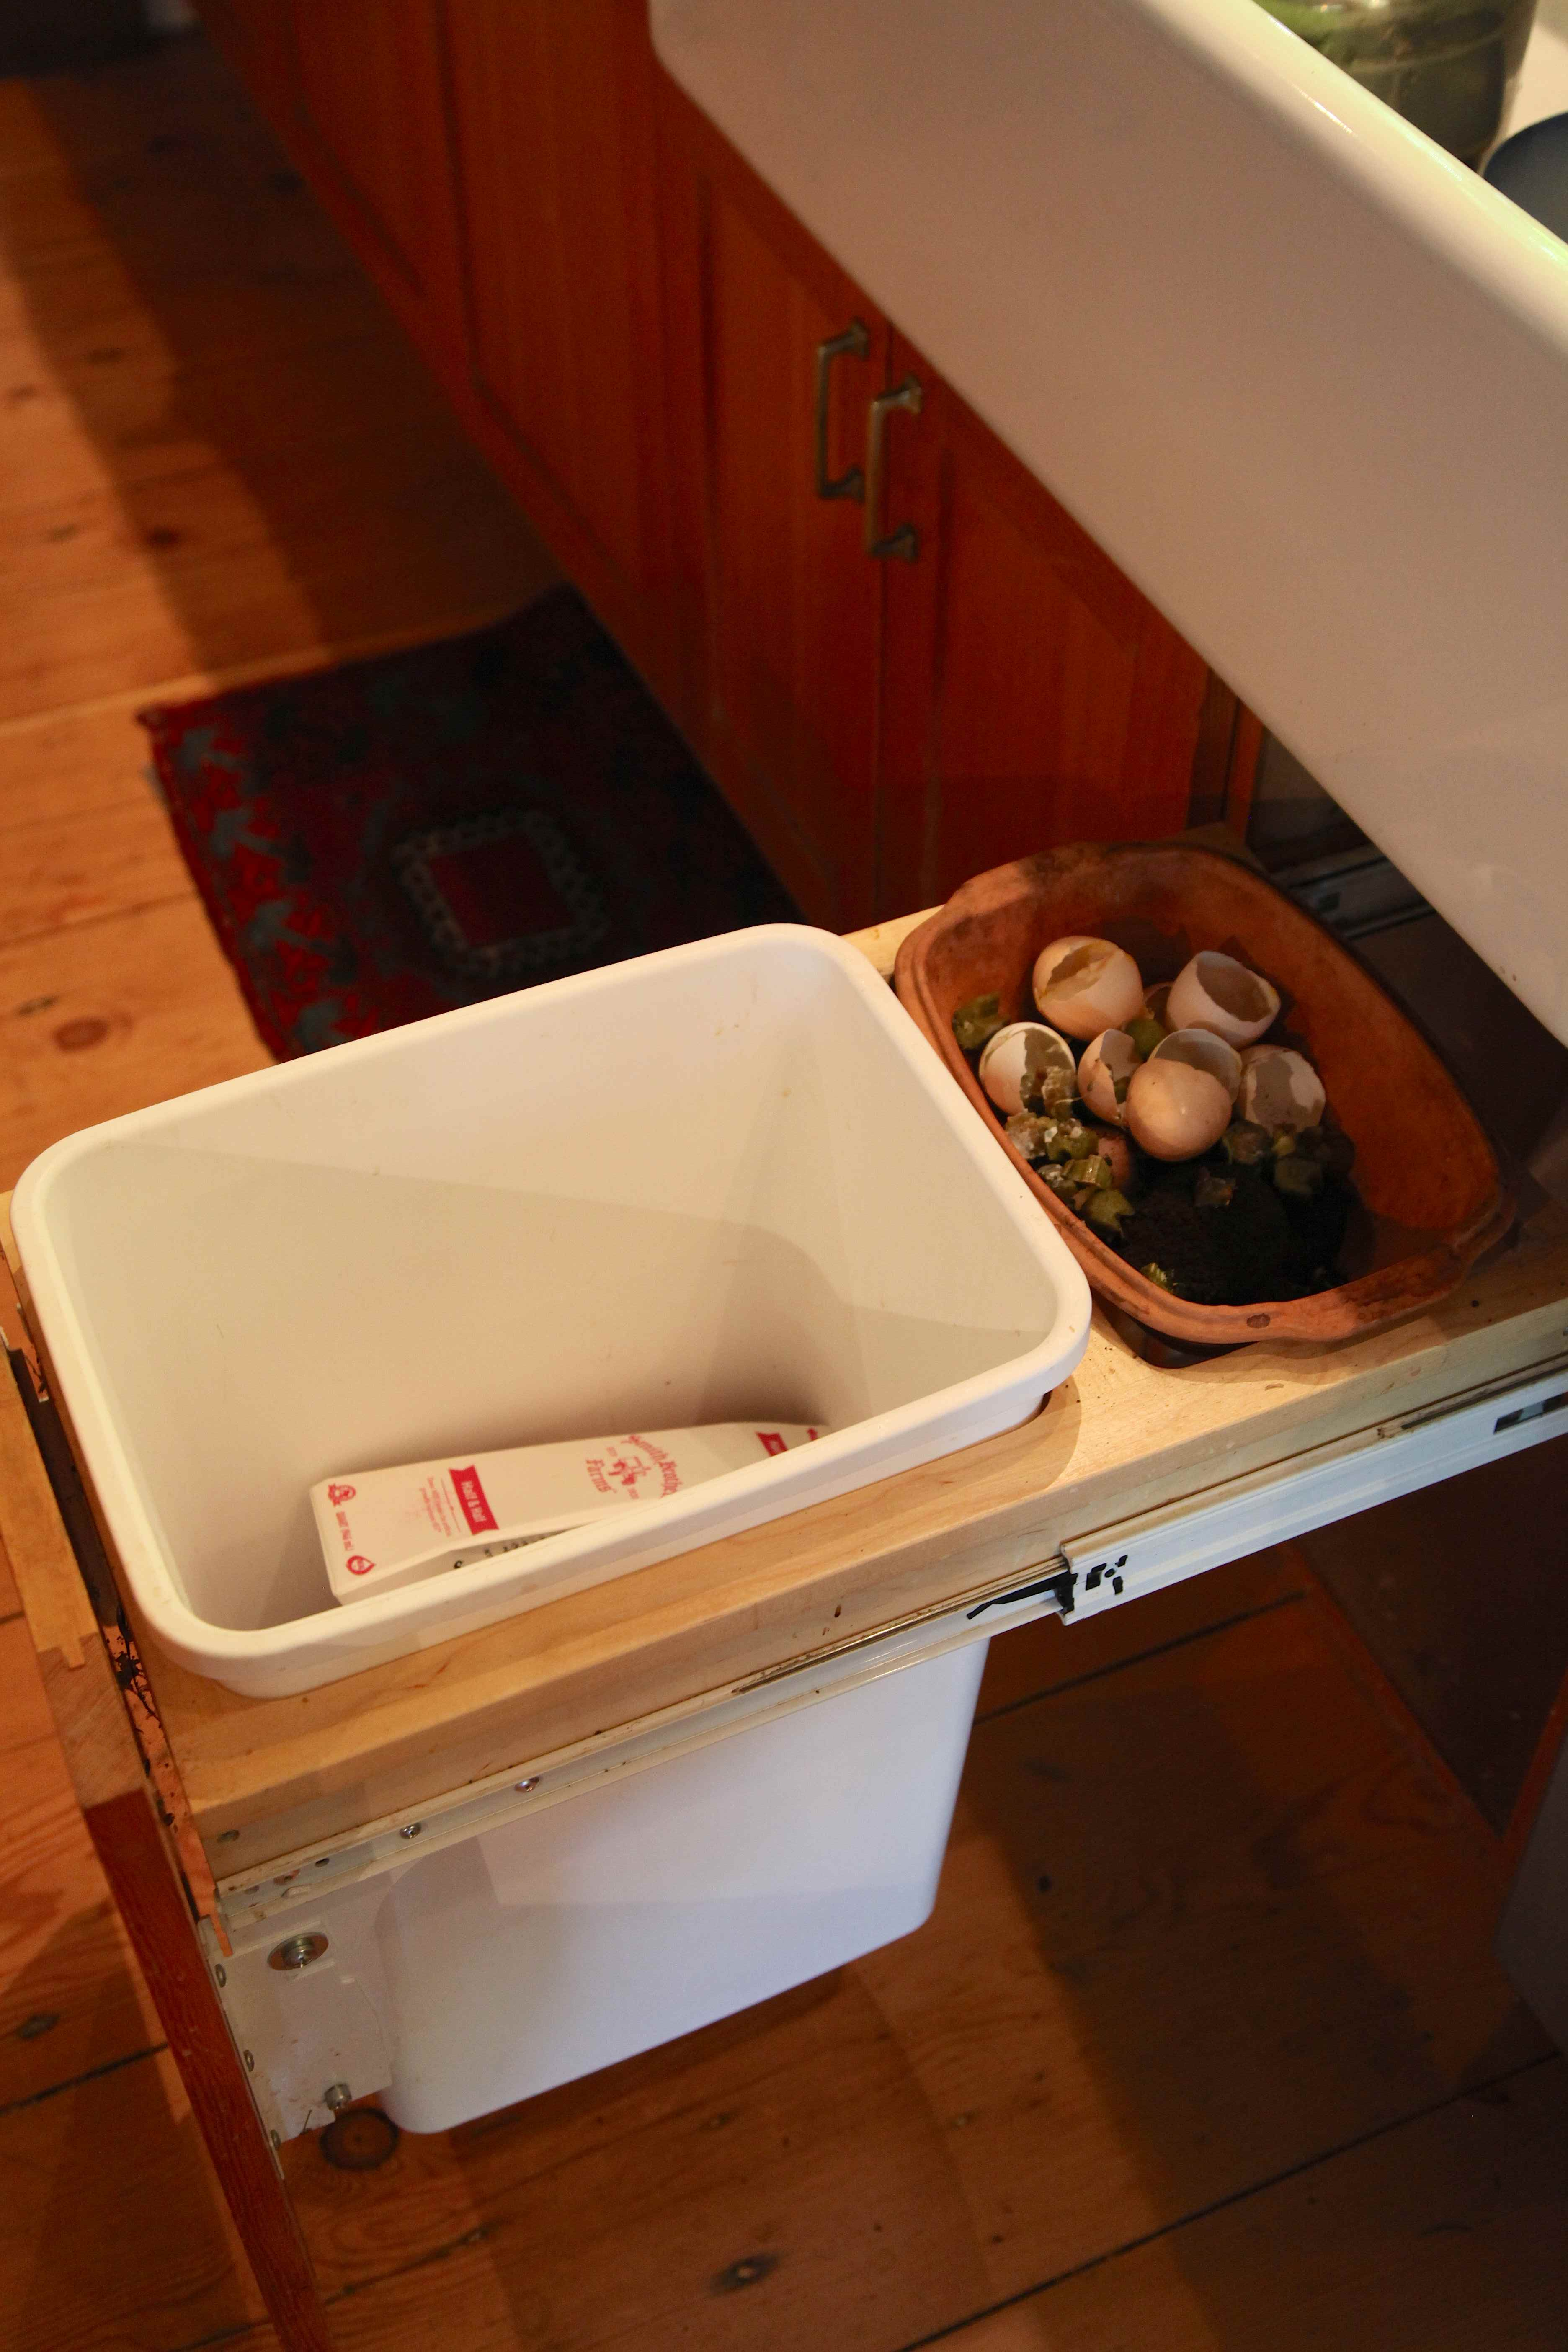 DIY Kitchen Compost Pails | Pioneering The Simple Life